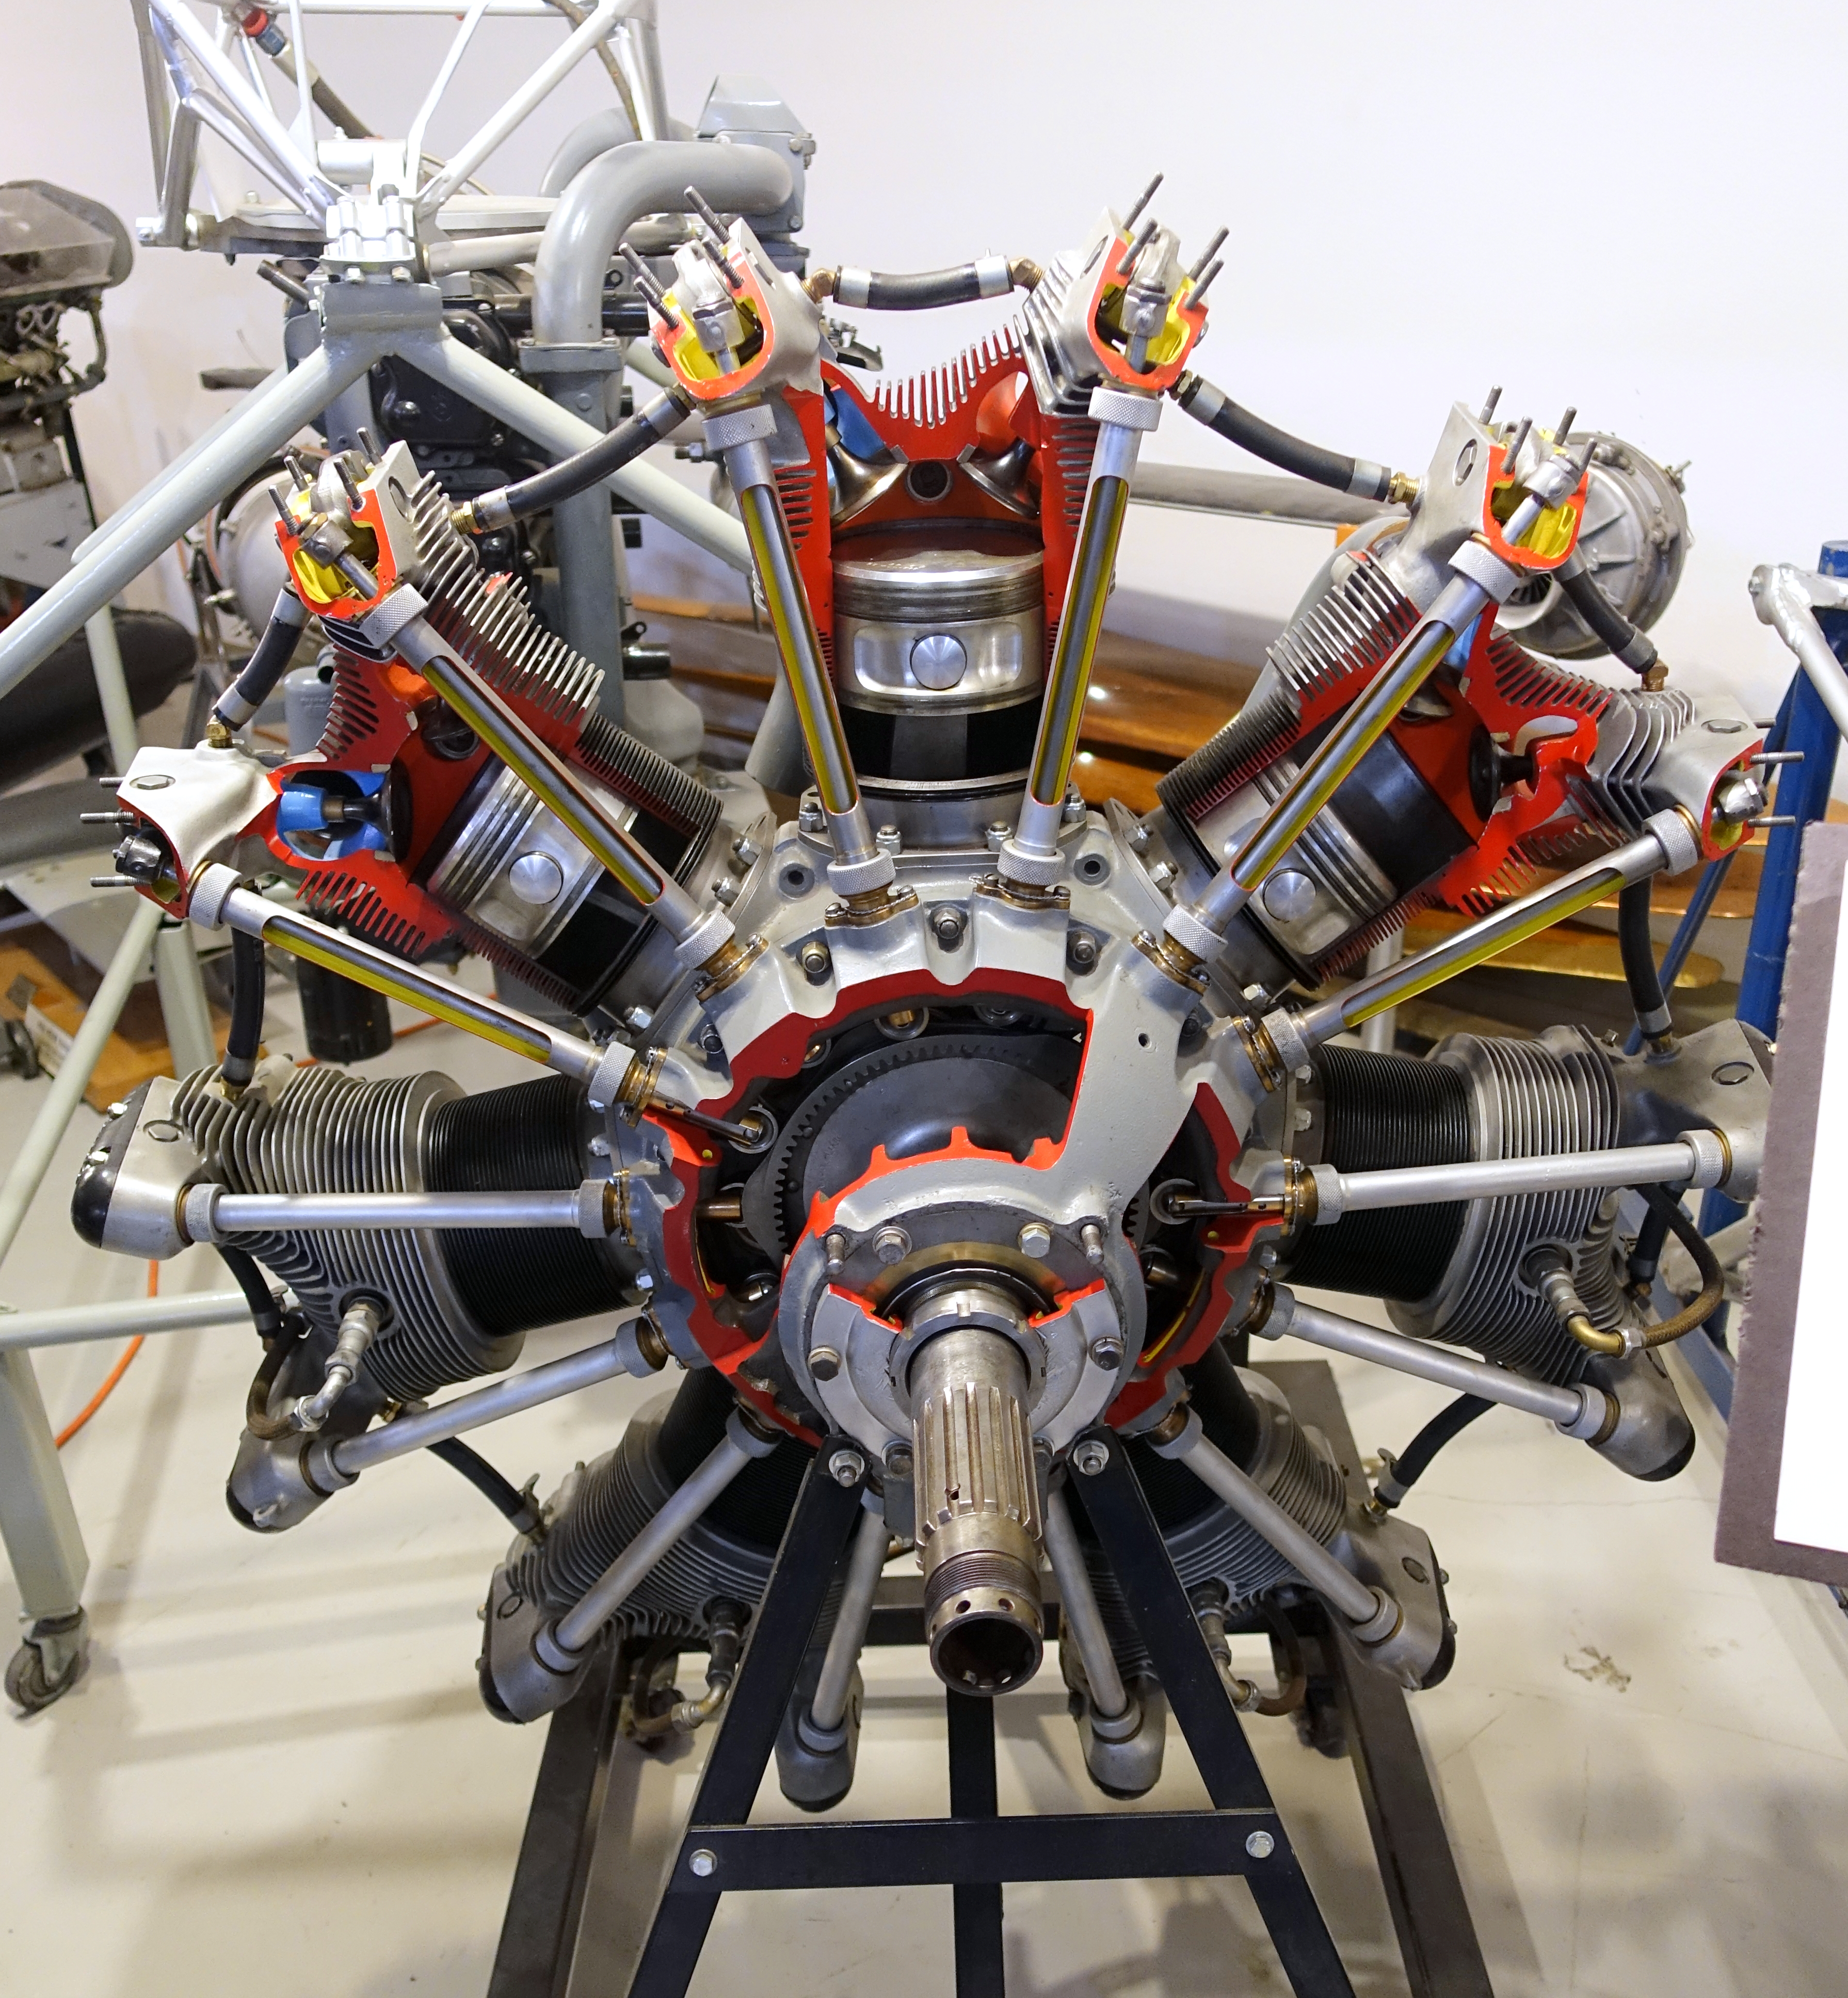 File:Jacobs R-755 7-cylinder air cooled radial engine